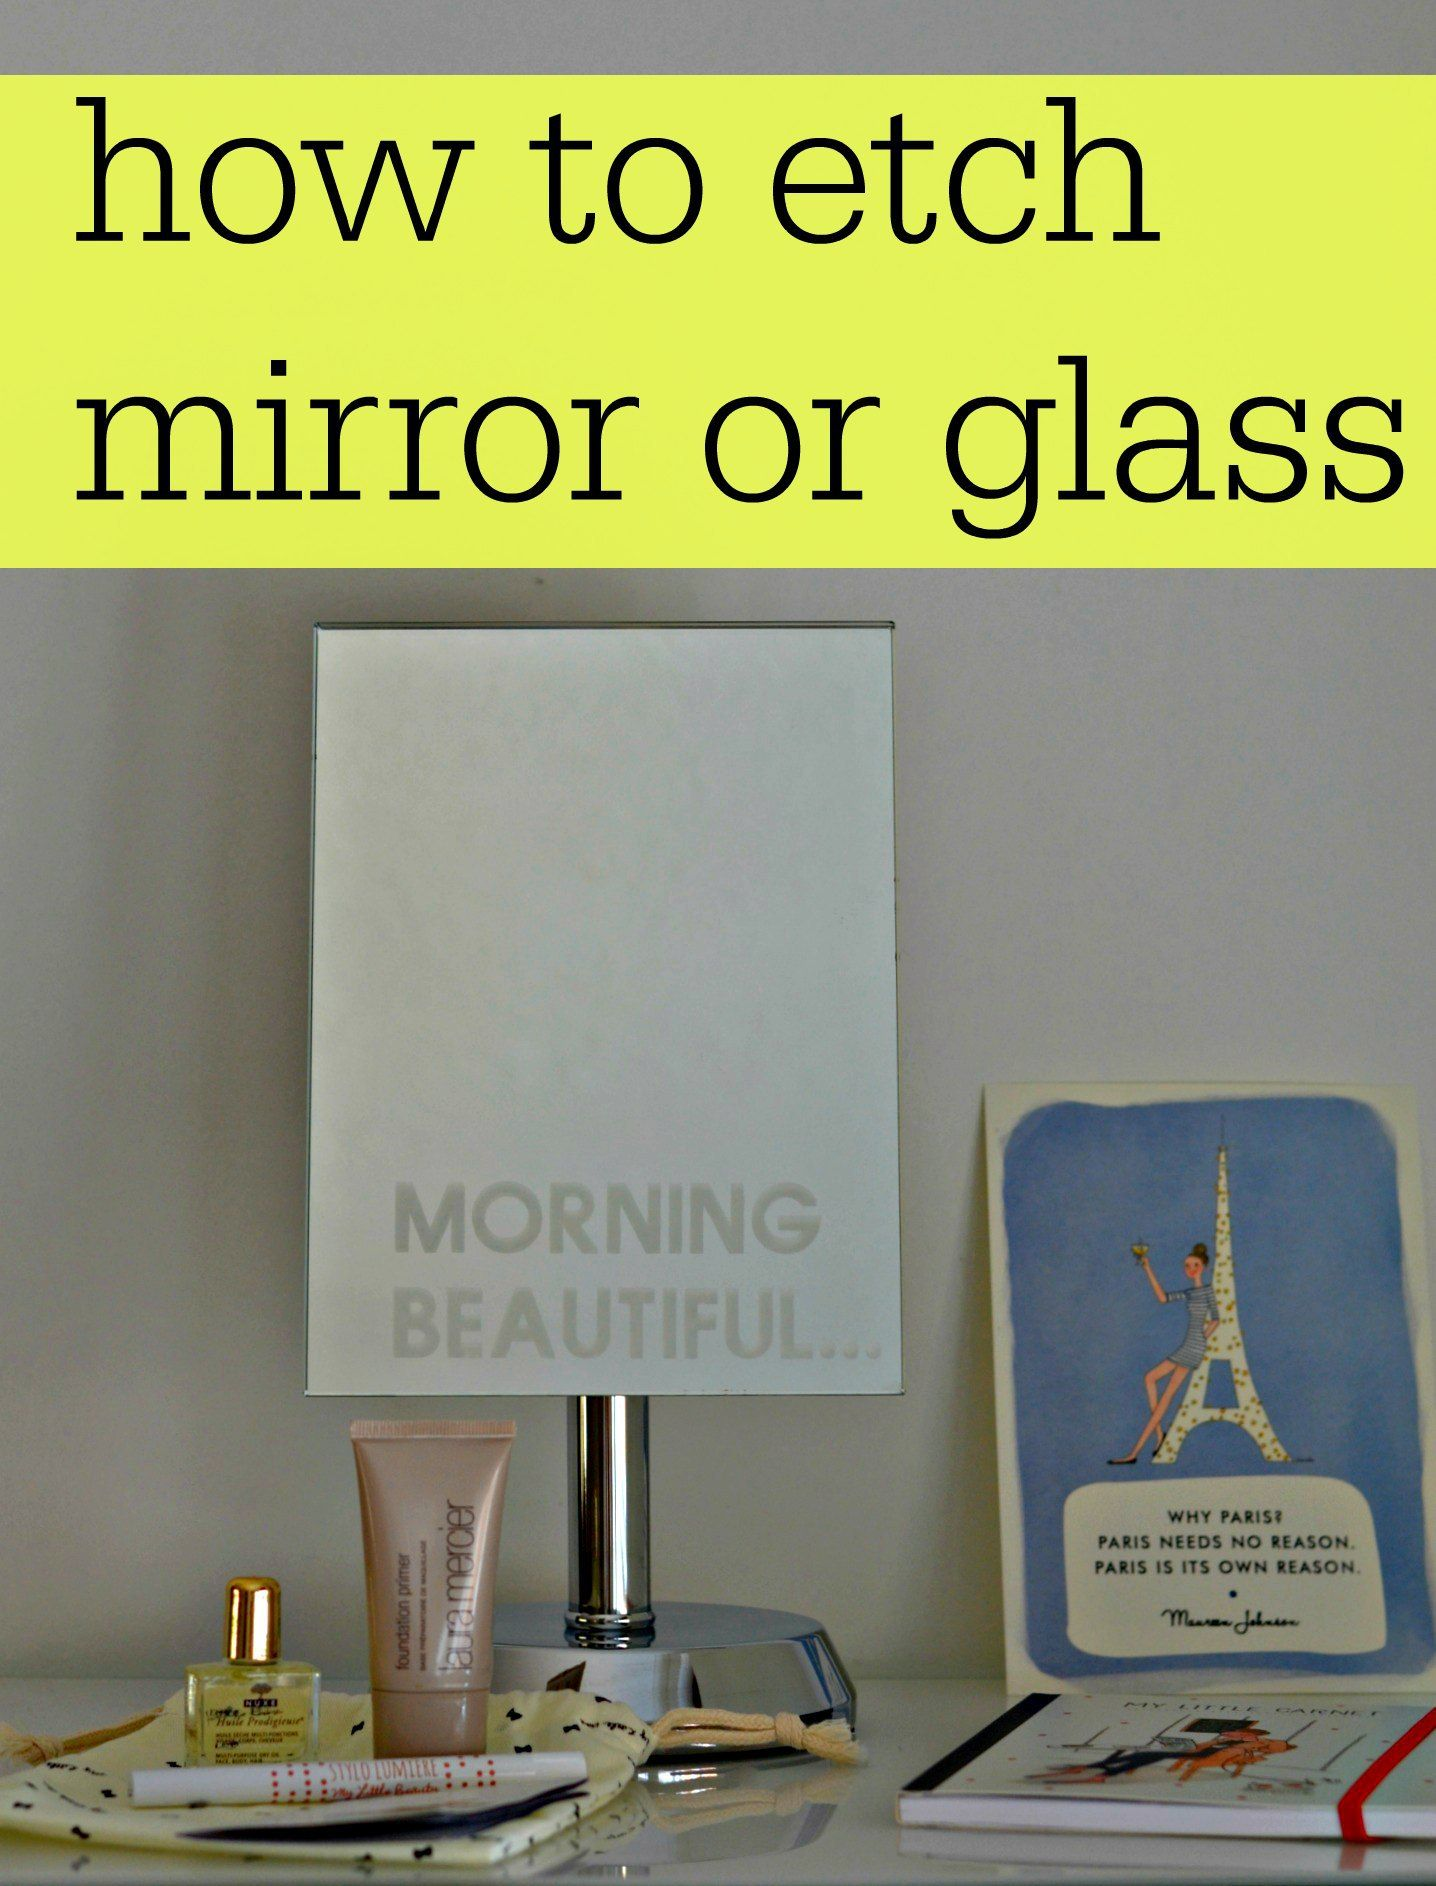 How To Etch Mirror Or Glass Cricut Explore Etched Mirror Cricut Explore Cricut